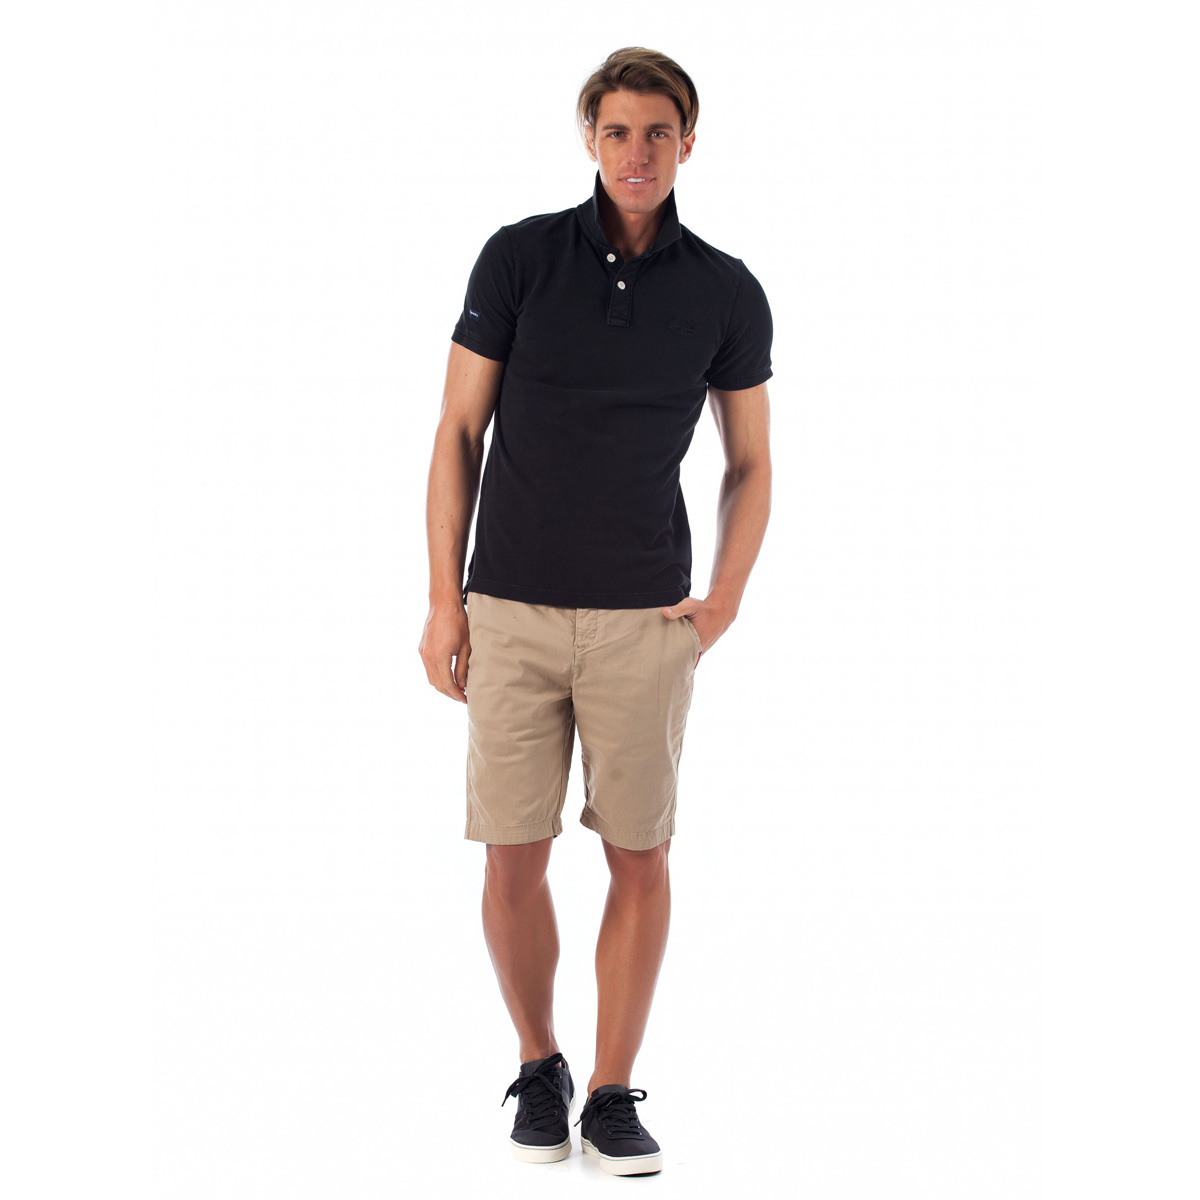 ao-polo-superdry-slim-fit-14